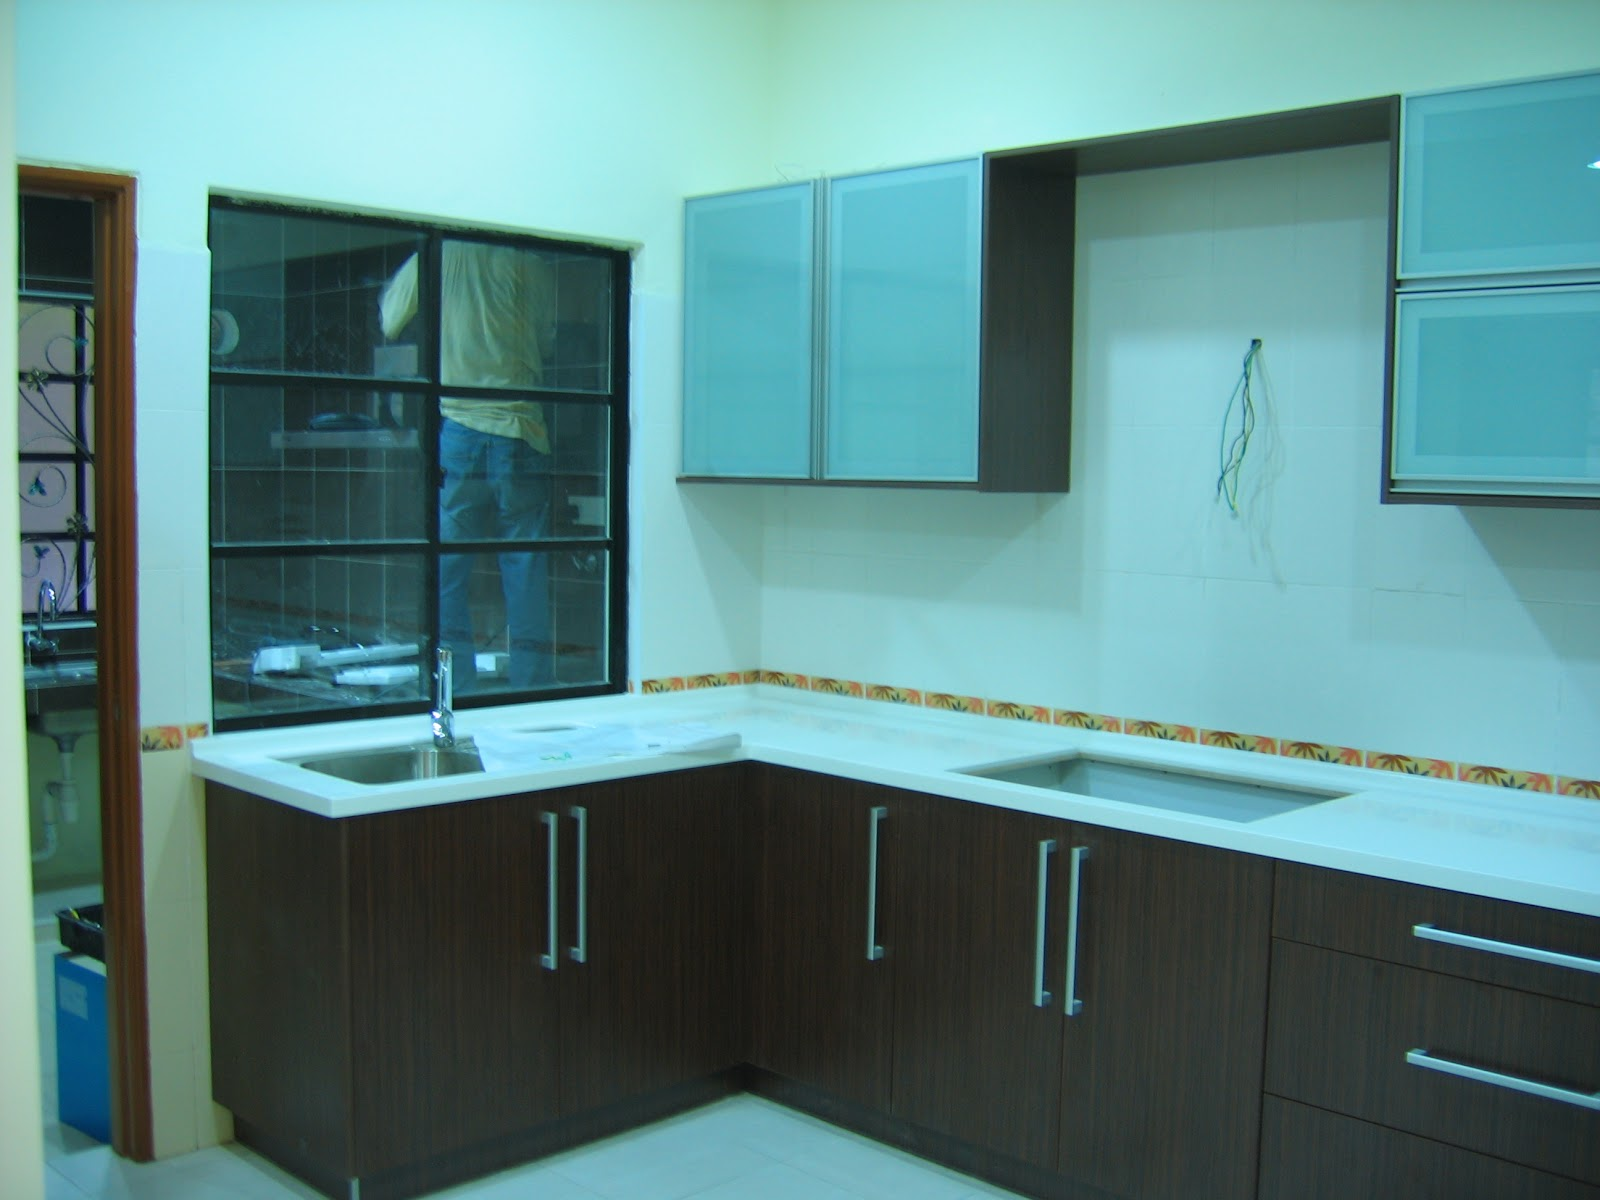 Mica Interior Design and Construction: Kitchen Cabinet